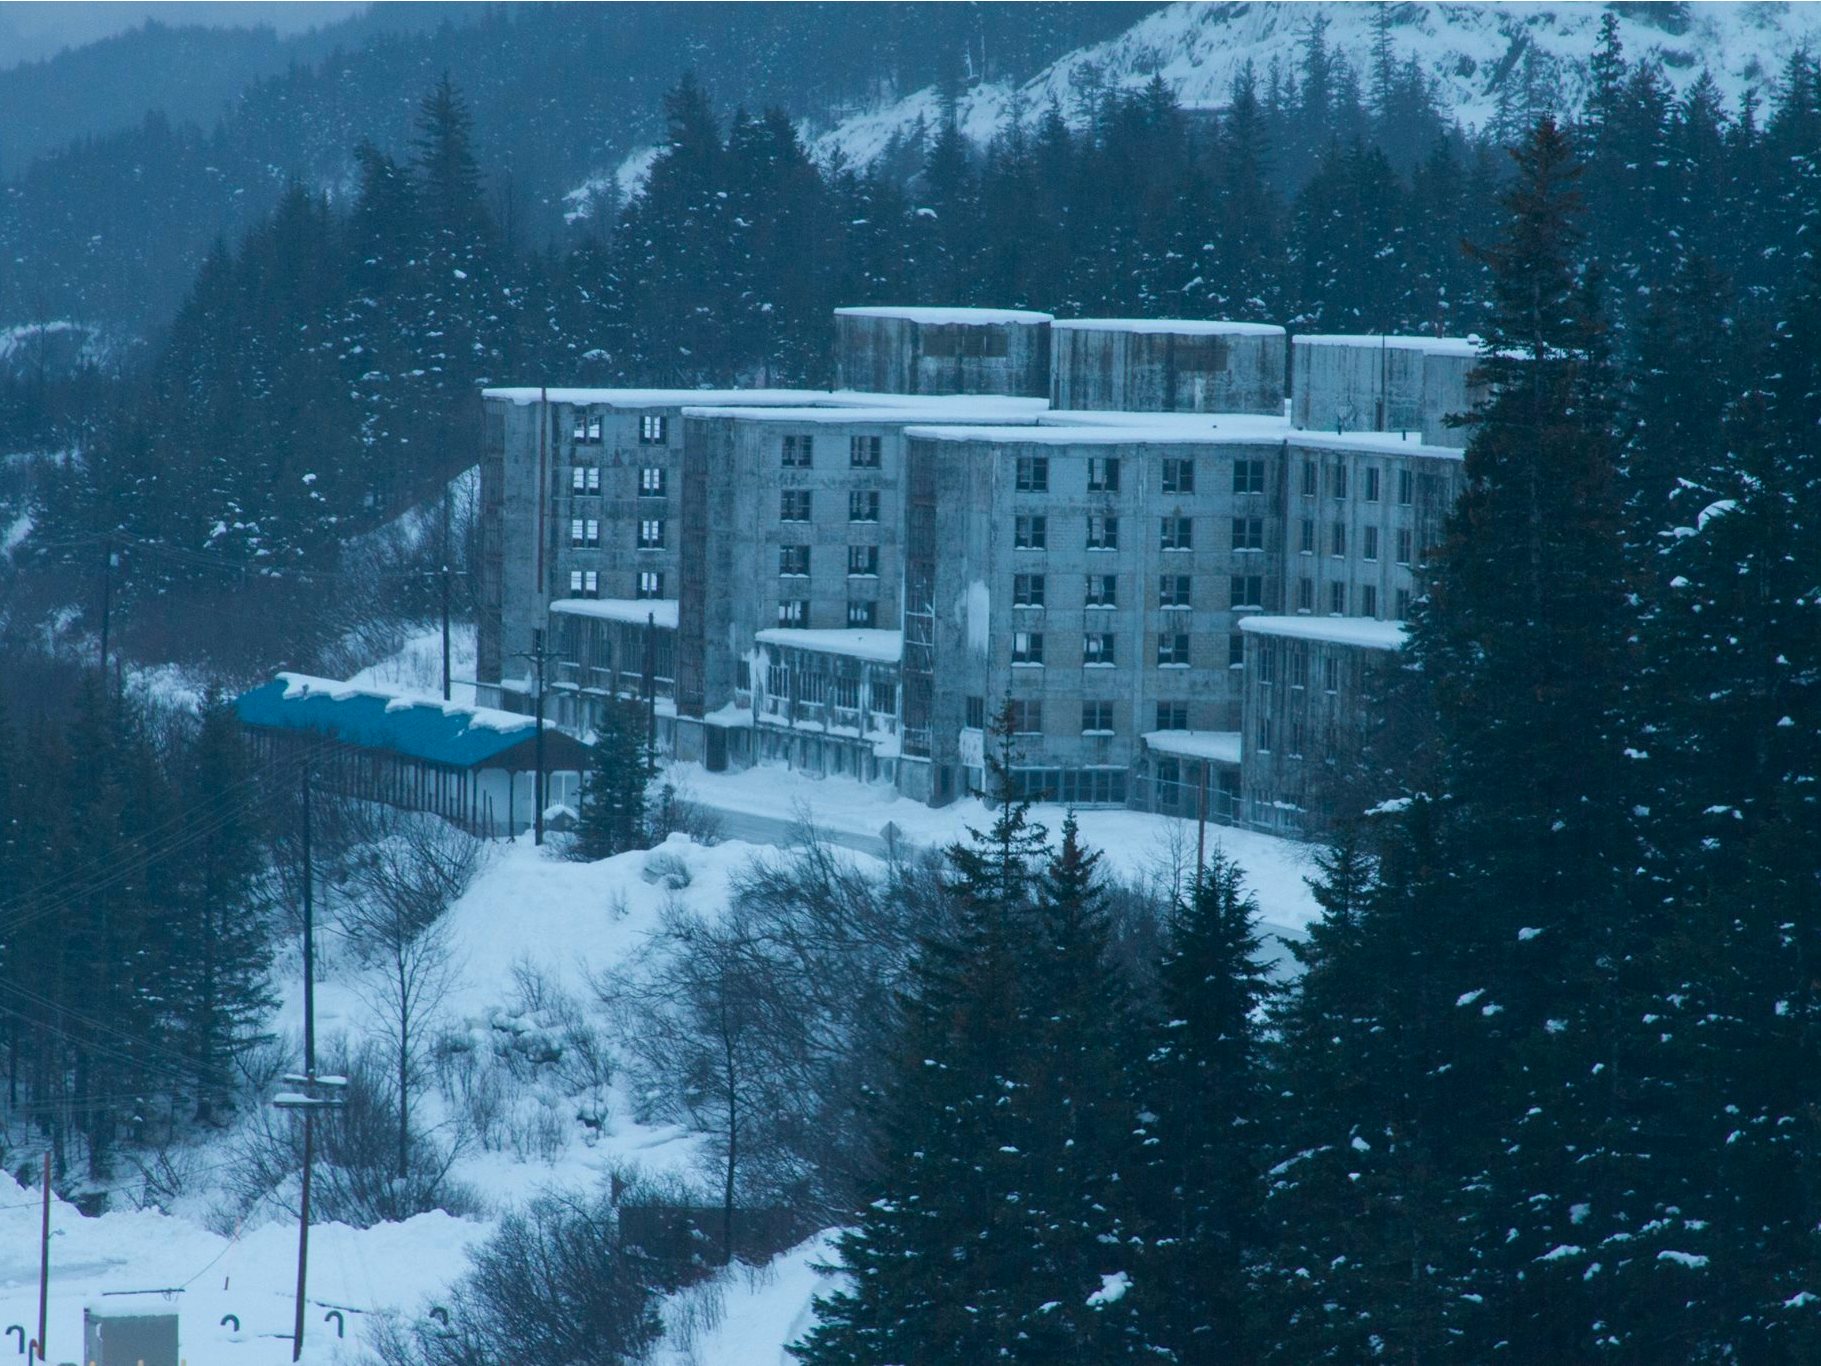 Here S What It S Like To Visit Whittier Alaska The Town Under One Roof Whittier Alaska Alaska What Is Like